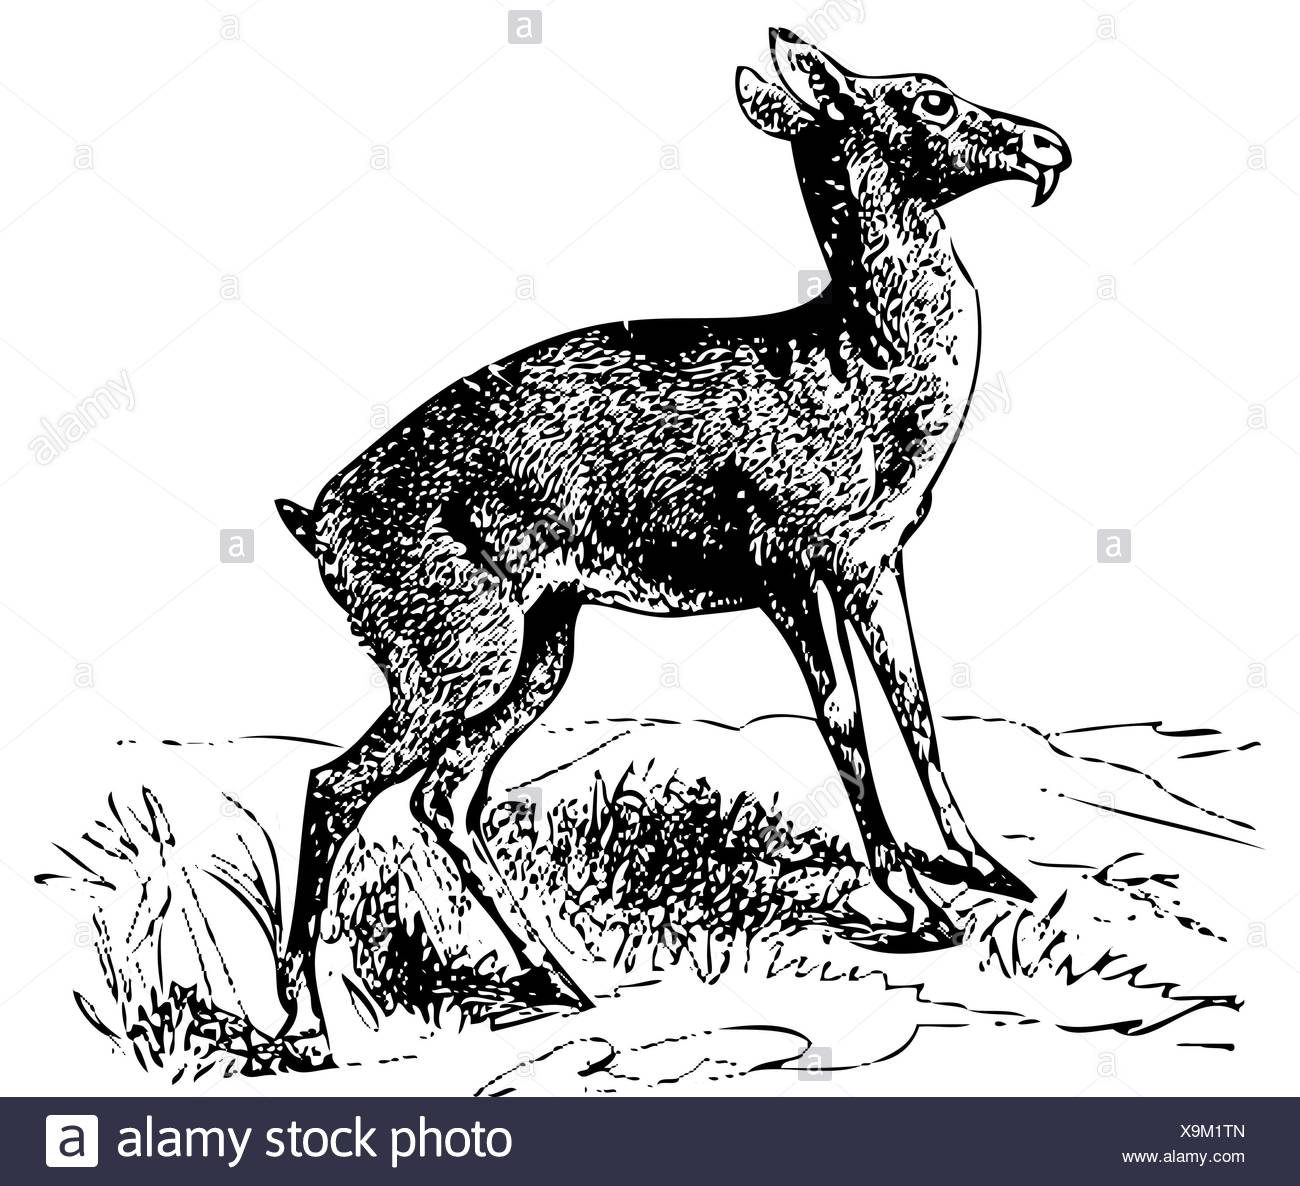 Old engraved illustration of a Siberian musk deer or moschus moschiferus, isolated on white  Live traced  From the Trousset encyclopedia, Paris 1886 - Stock Image